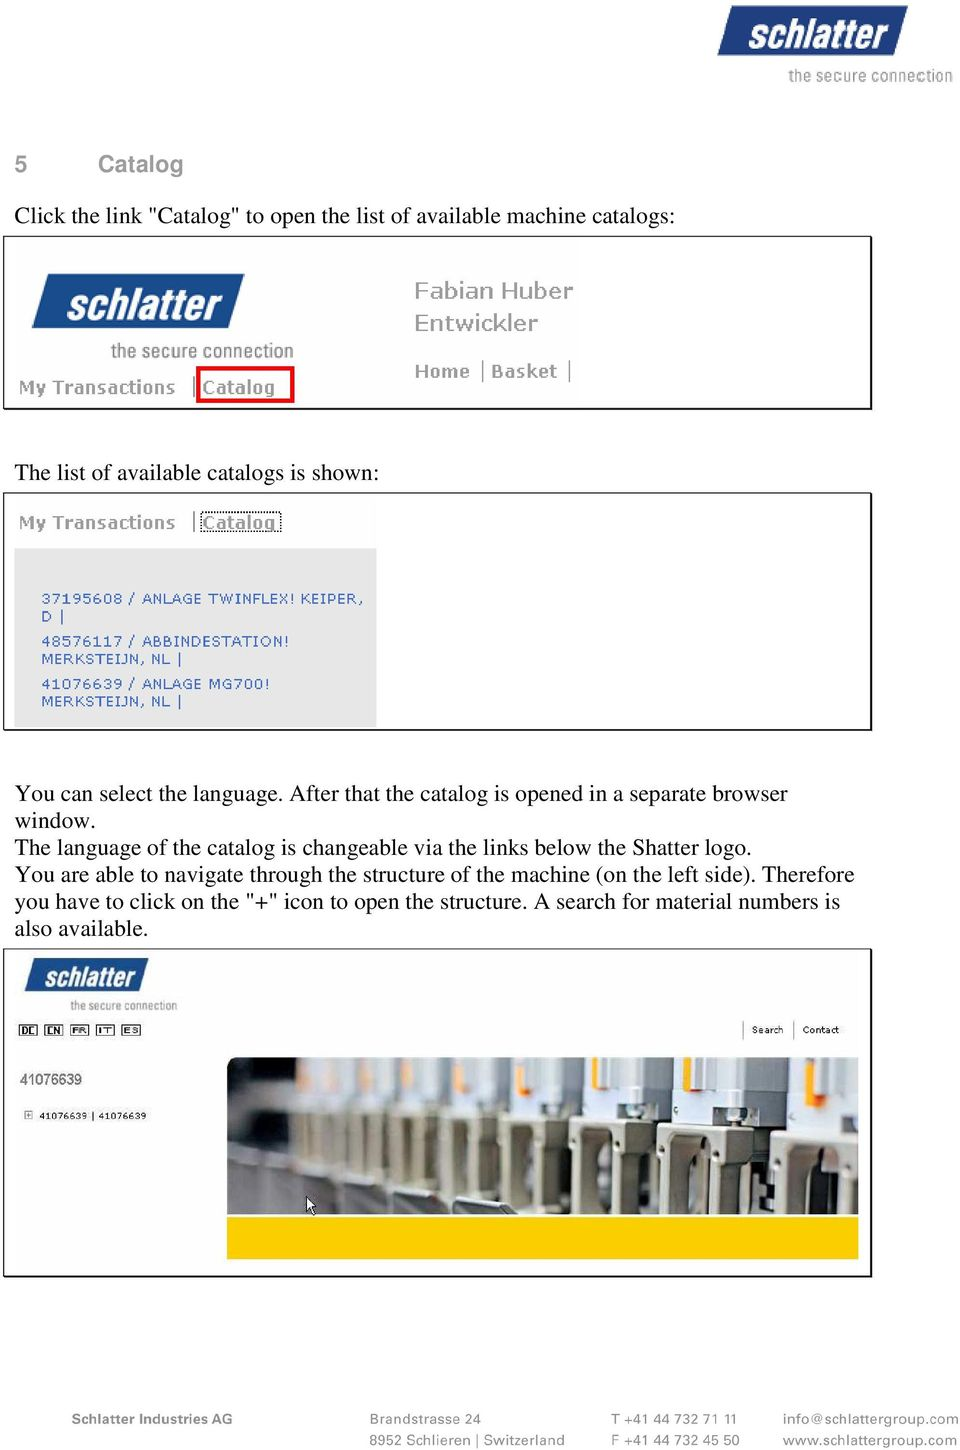 The language of the catalog is changeable via the links below the Shatter logo.